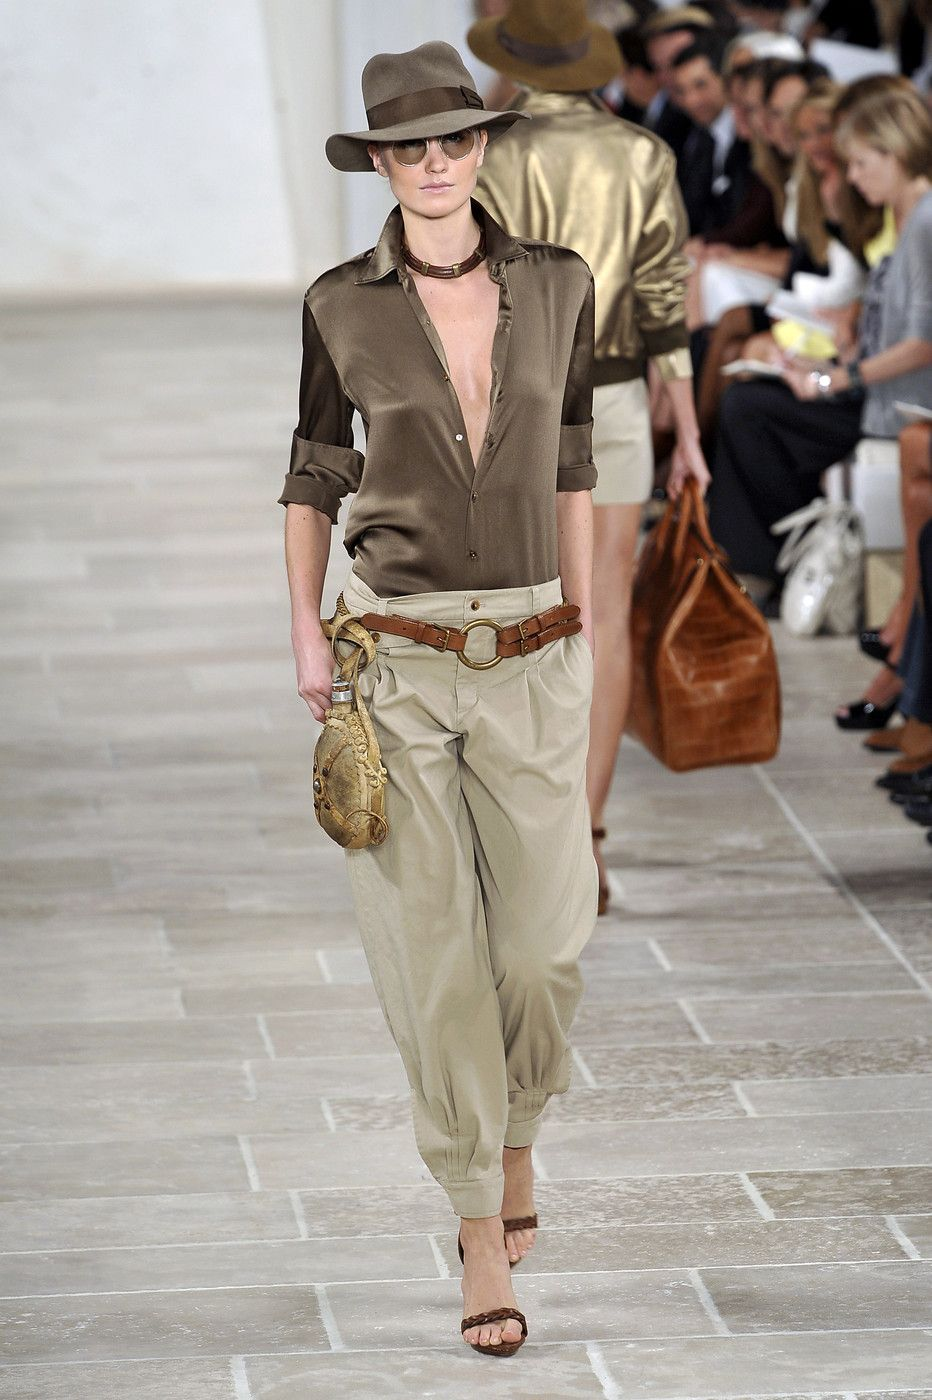 Ralph Lauren at New York Fashion Week Spring 2009 - Back to The Office: Chic & Cool Looks Para Trabalhar Lolla Approved